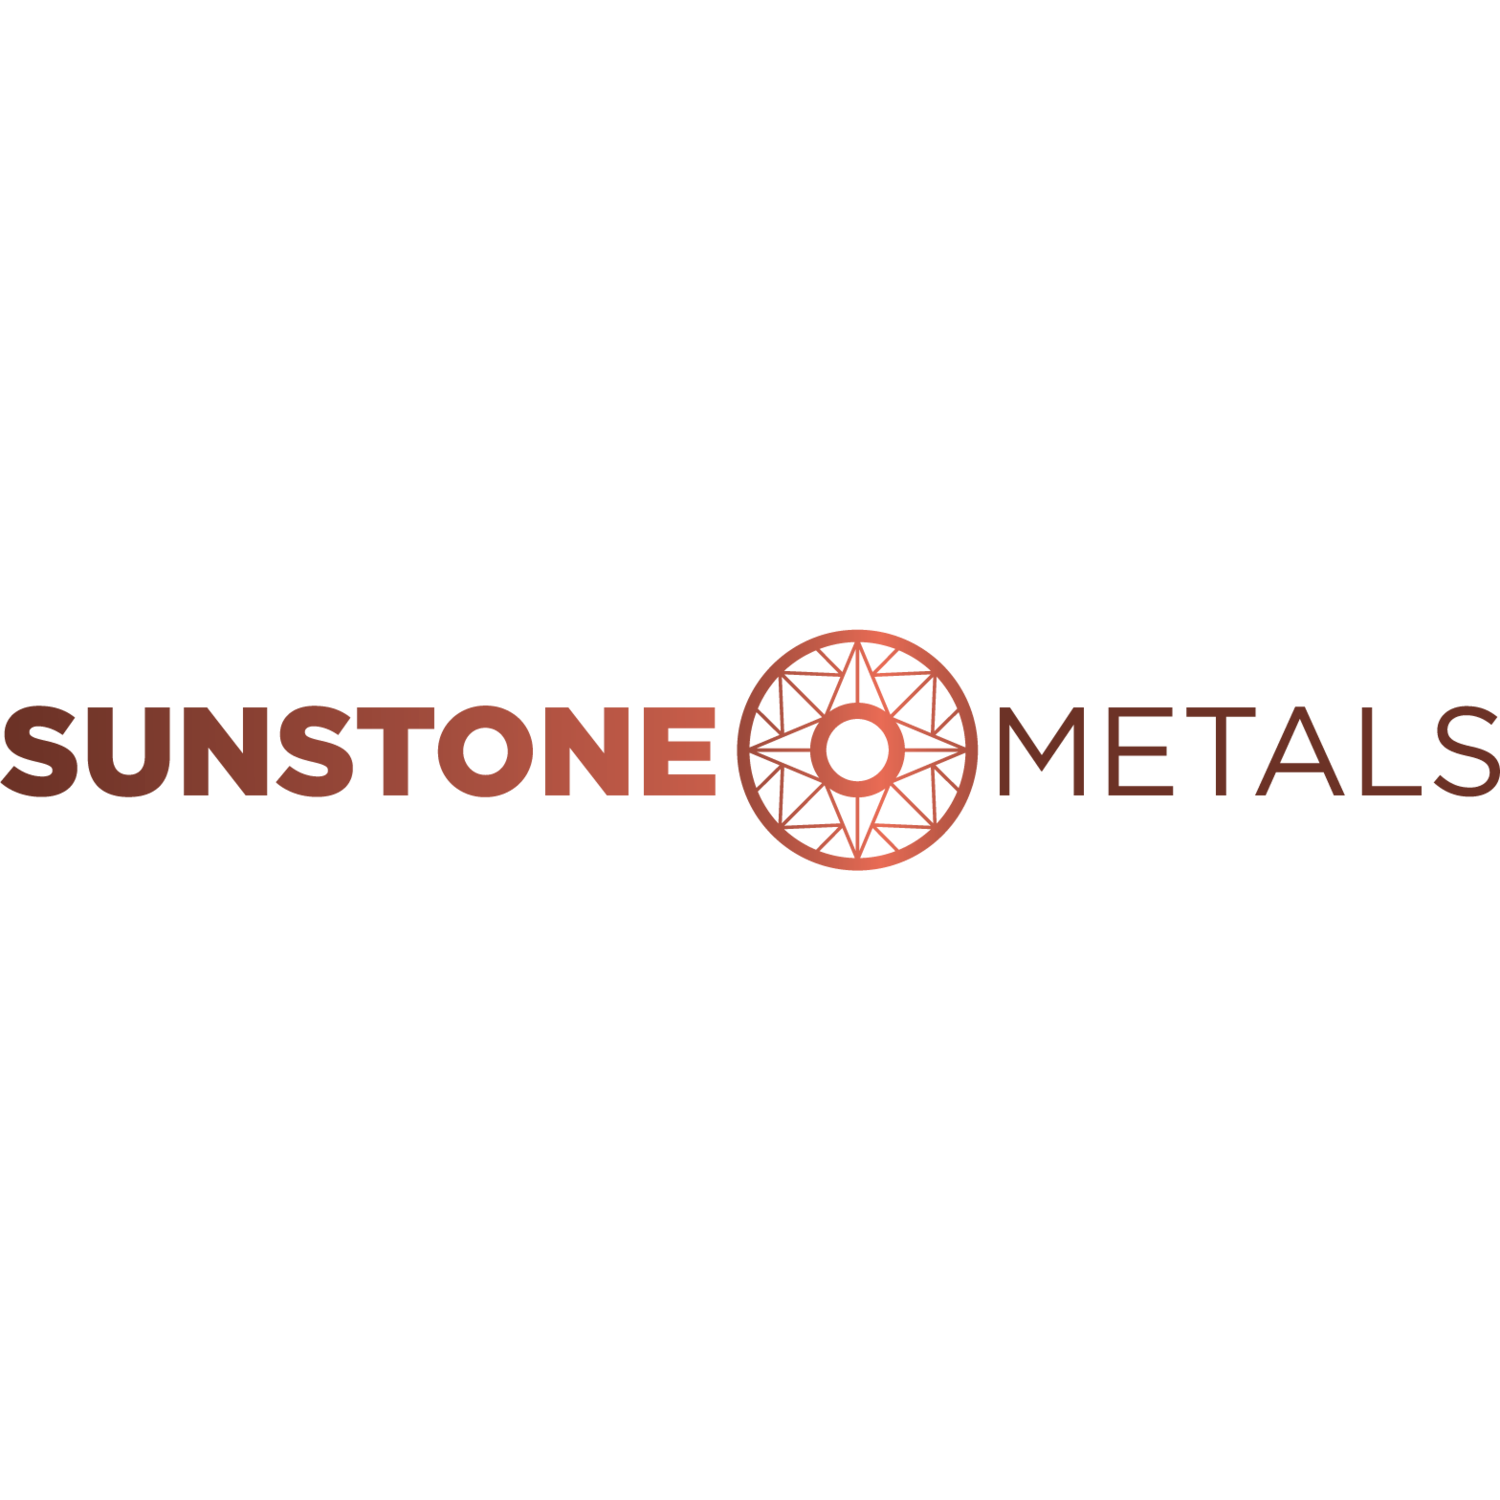 SUNSTONE METALS LTD